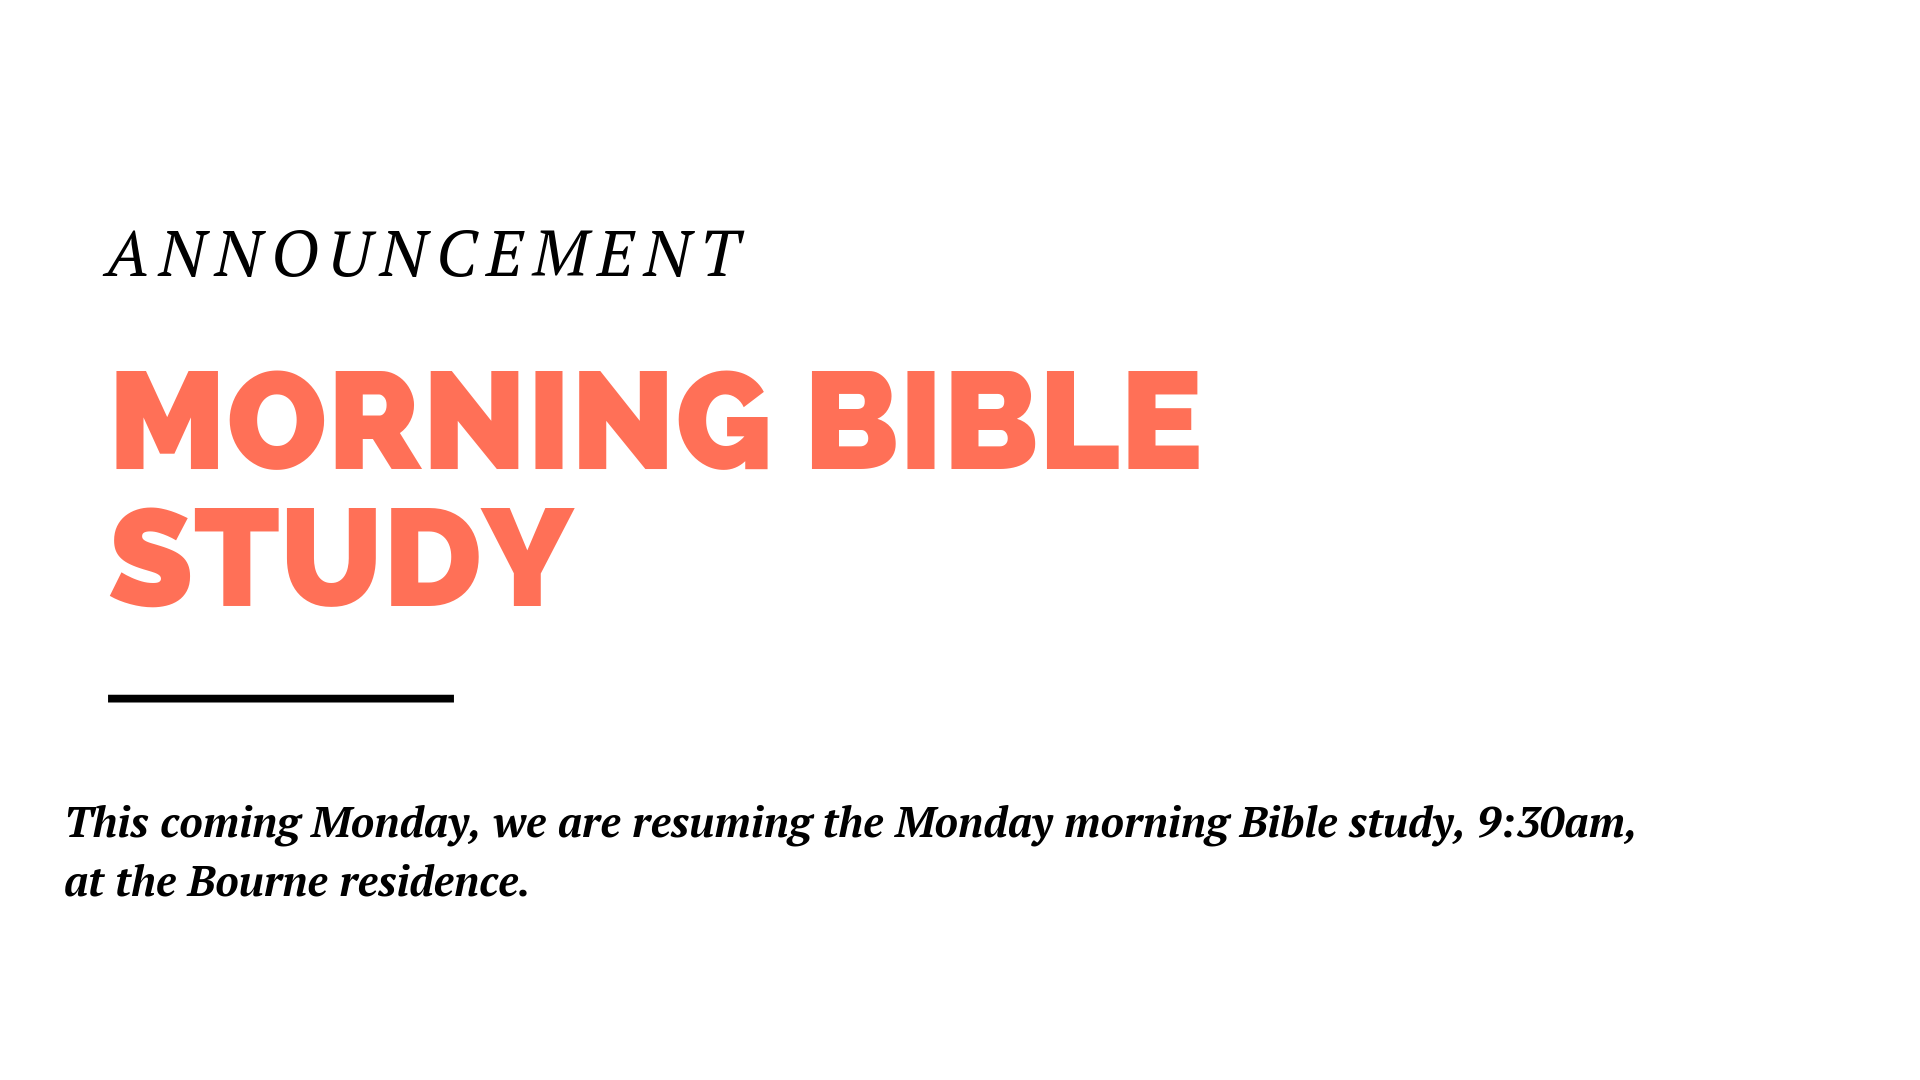 This coming Monday, we are resuming the Monday morning Bible study, 9:30am, at the Bourne residence.